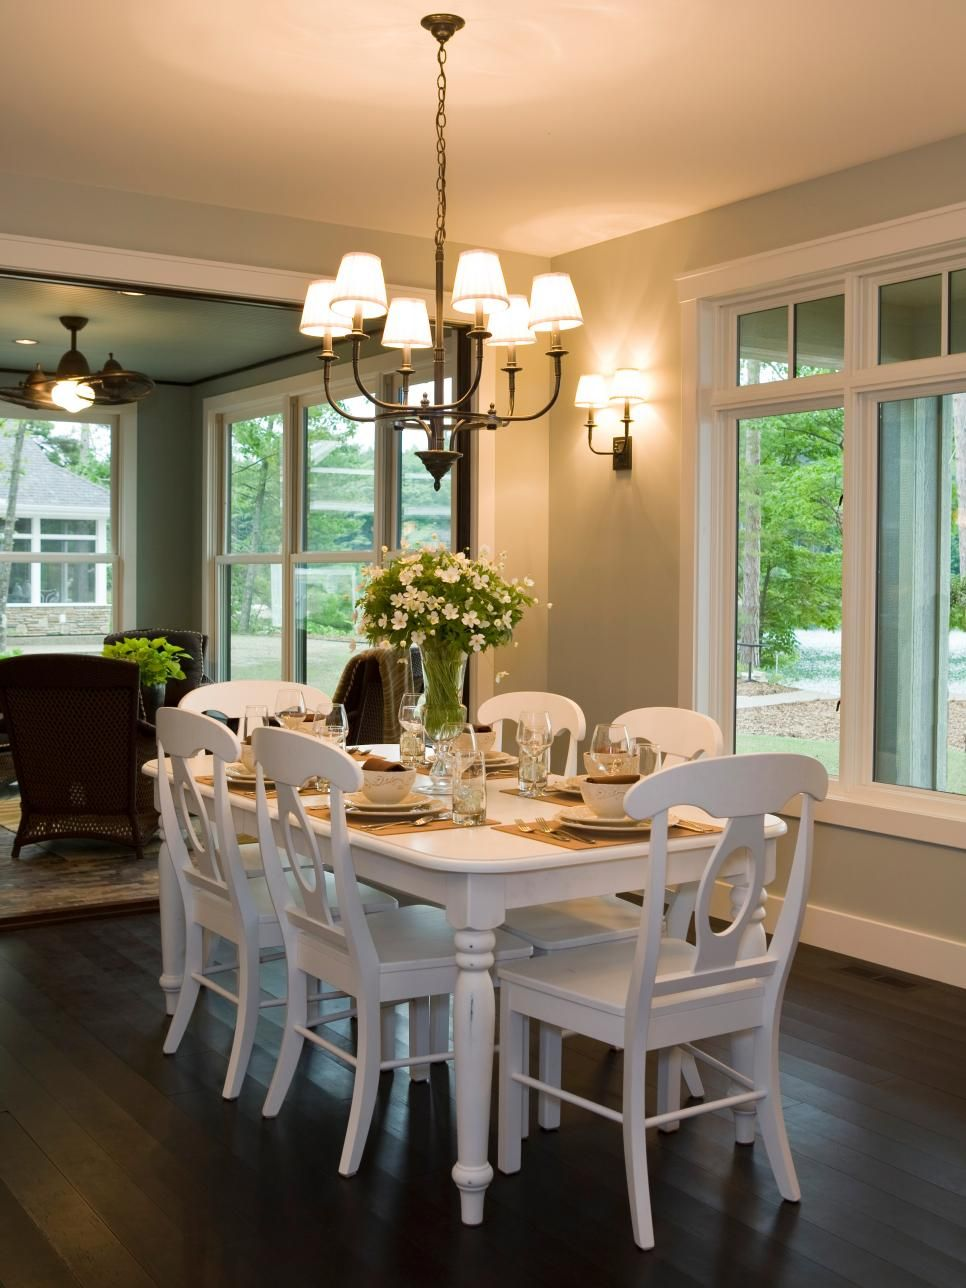 Dining Room Dark Romantic: White Furniture Against A Dark Hardwood Floor Bring Energy